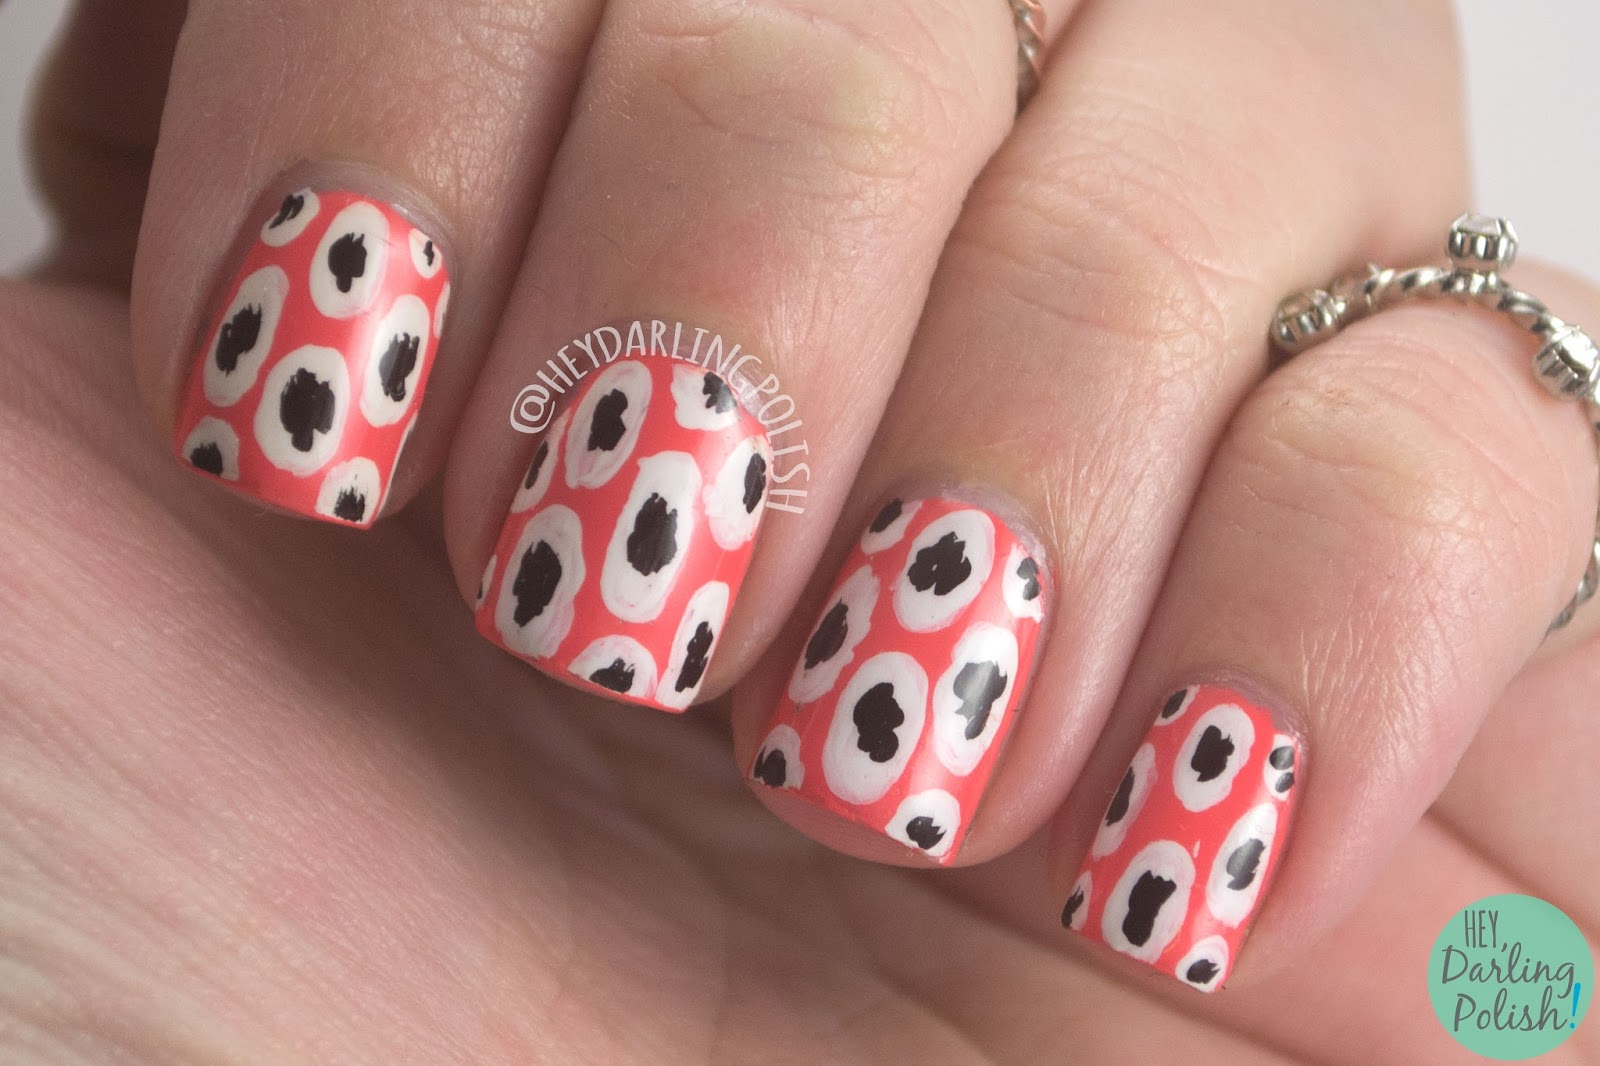 nails, nail art, nail polish, dots, hey darling polish, the nail challenge collaborative, coral, pattern,